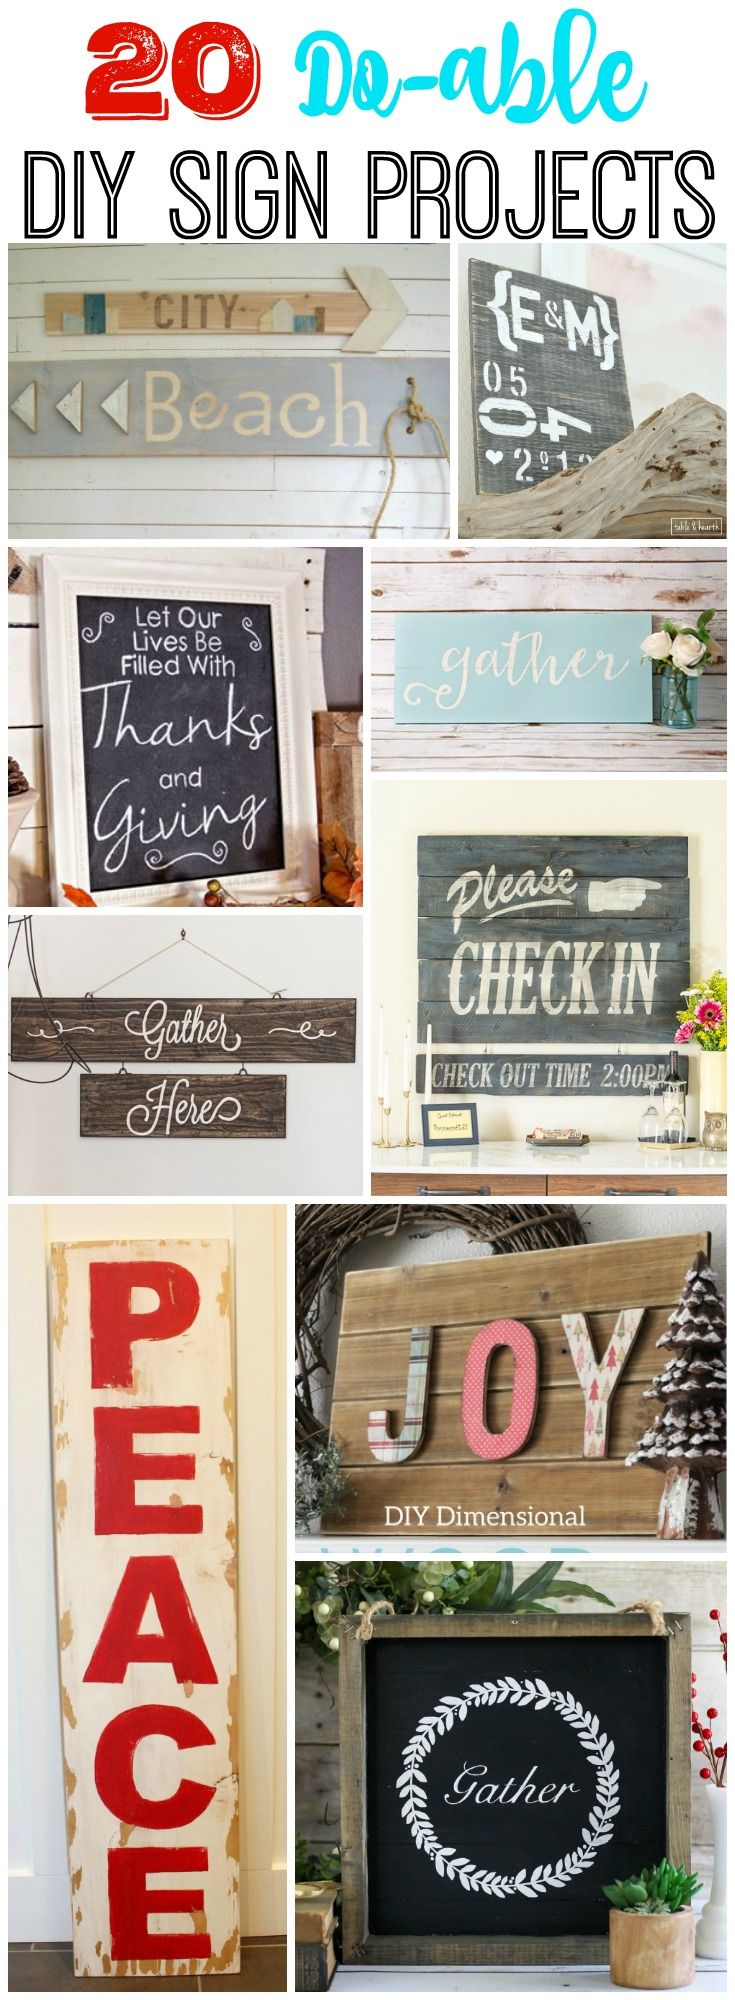 20 Do-able DIY Sign Projects